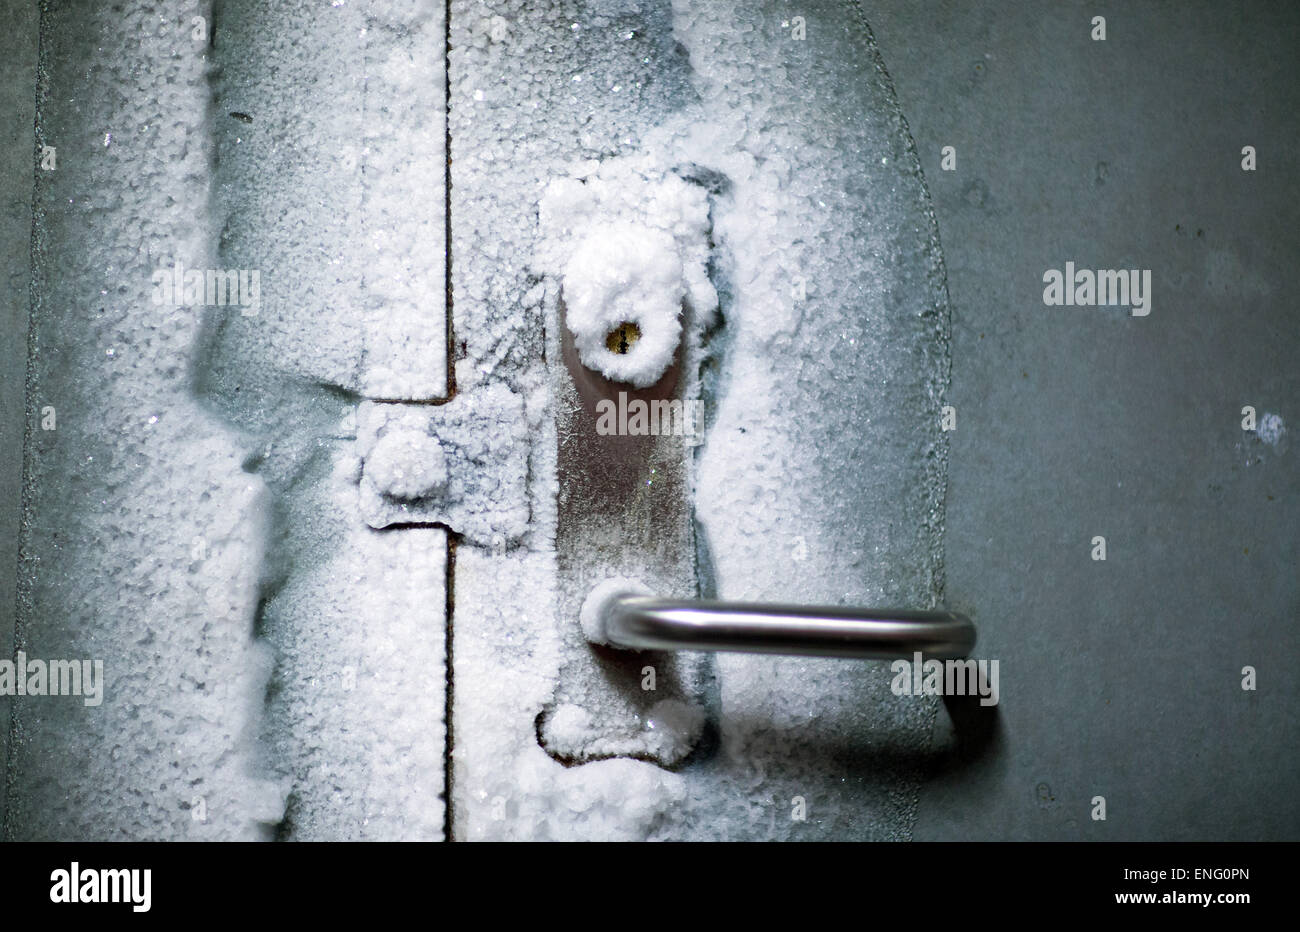 Spitsbergen, Norway. 08th Apr, 2015. An iced entrance door to the international gene bank Svalbard Global Seed Vault - Stock Image